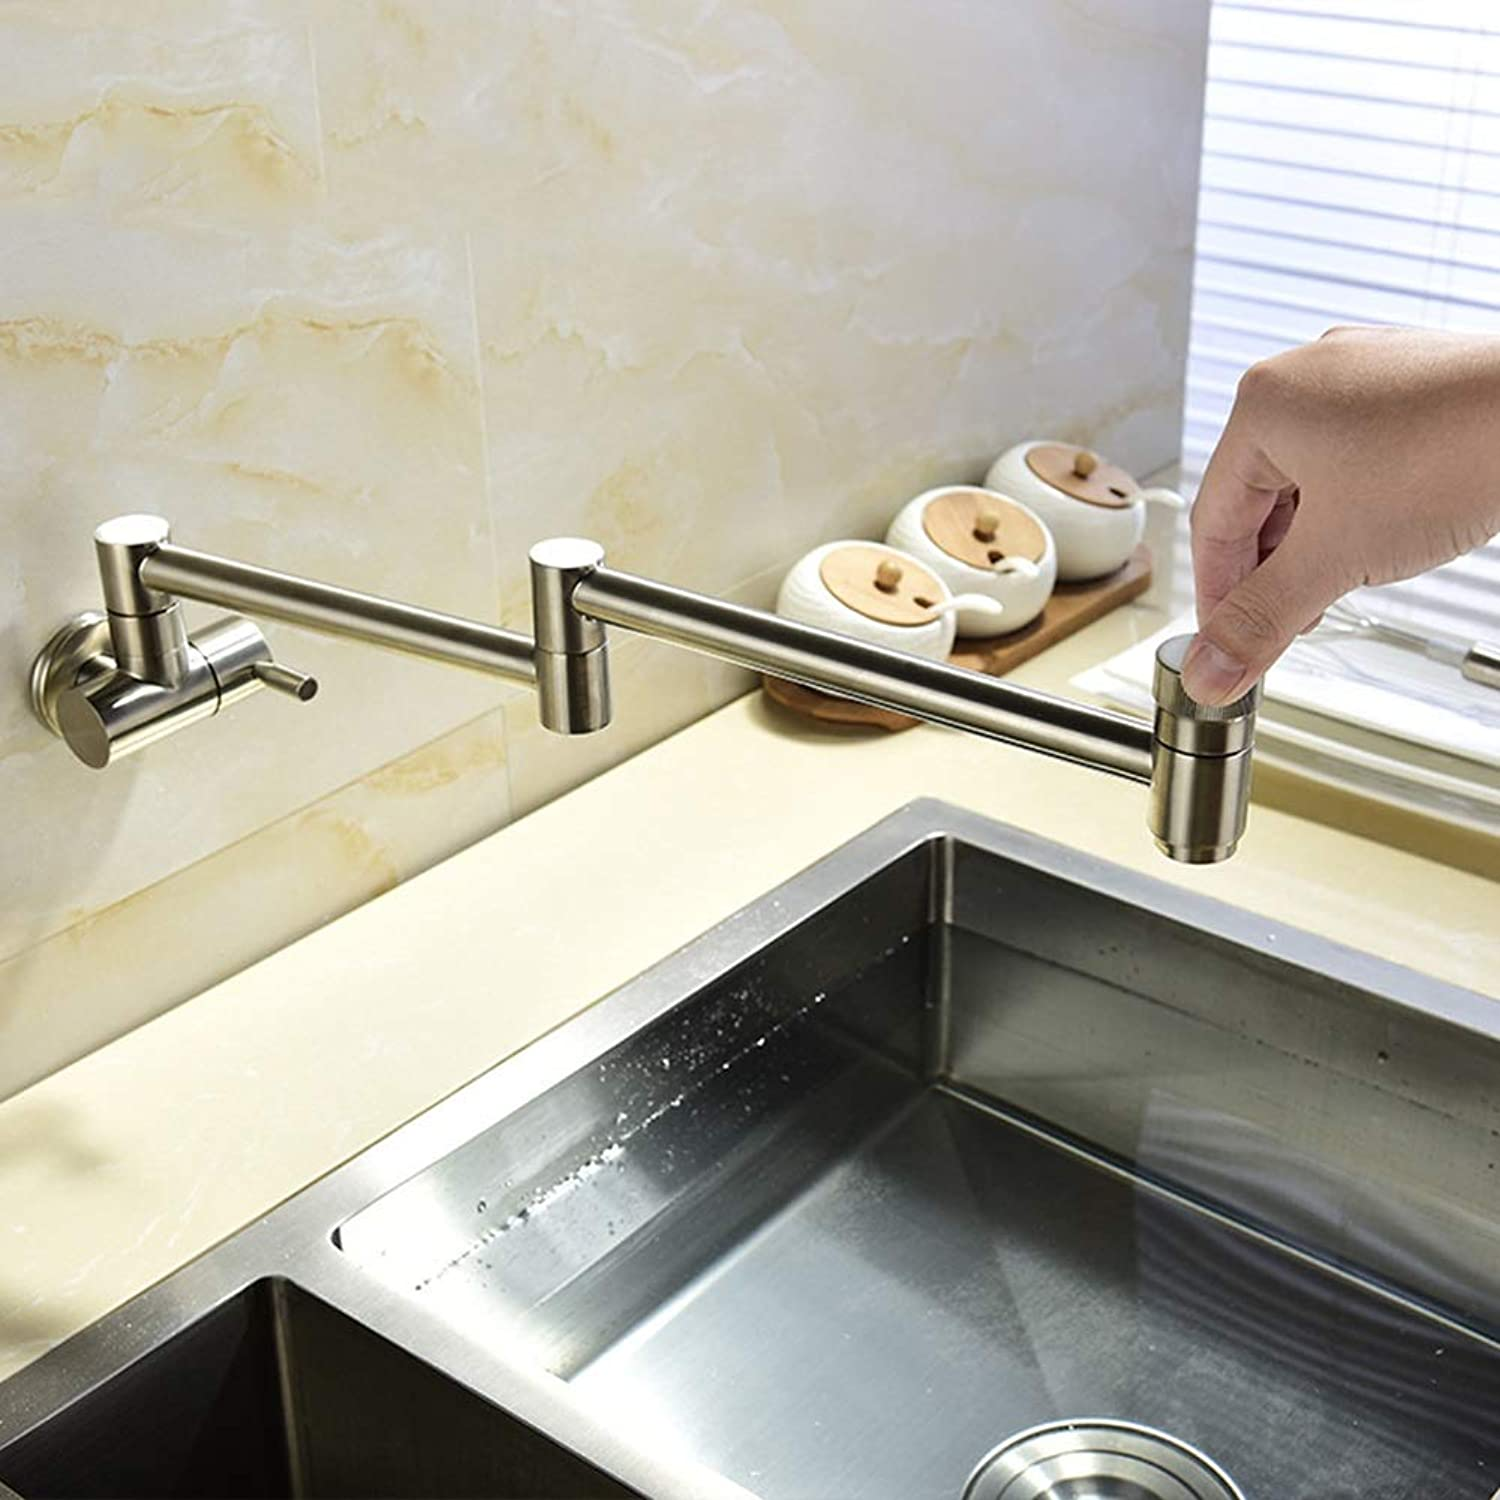 Faucet Basin Tap Copper In-wall Tap Single Cold Faucet Kitchen Sink Faucet Foldable Single Cold Faucet Laundry Pool Extension Faucet